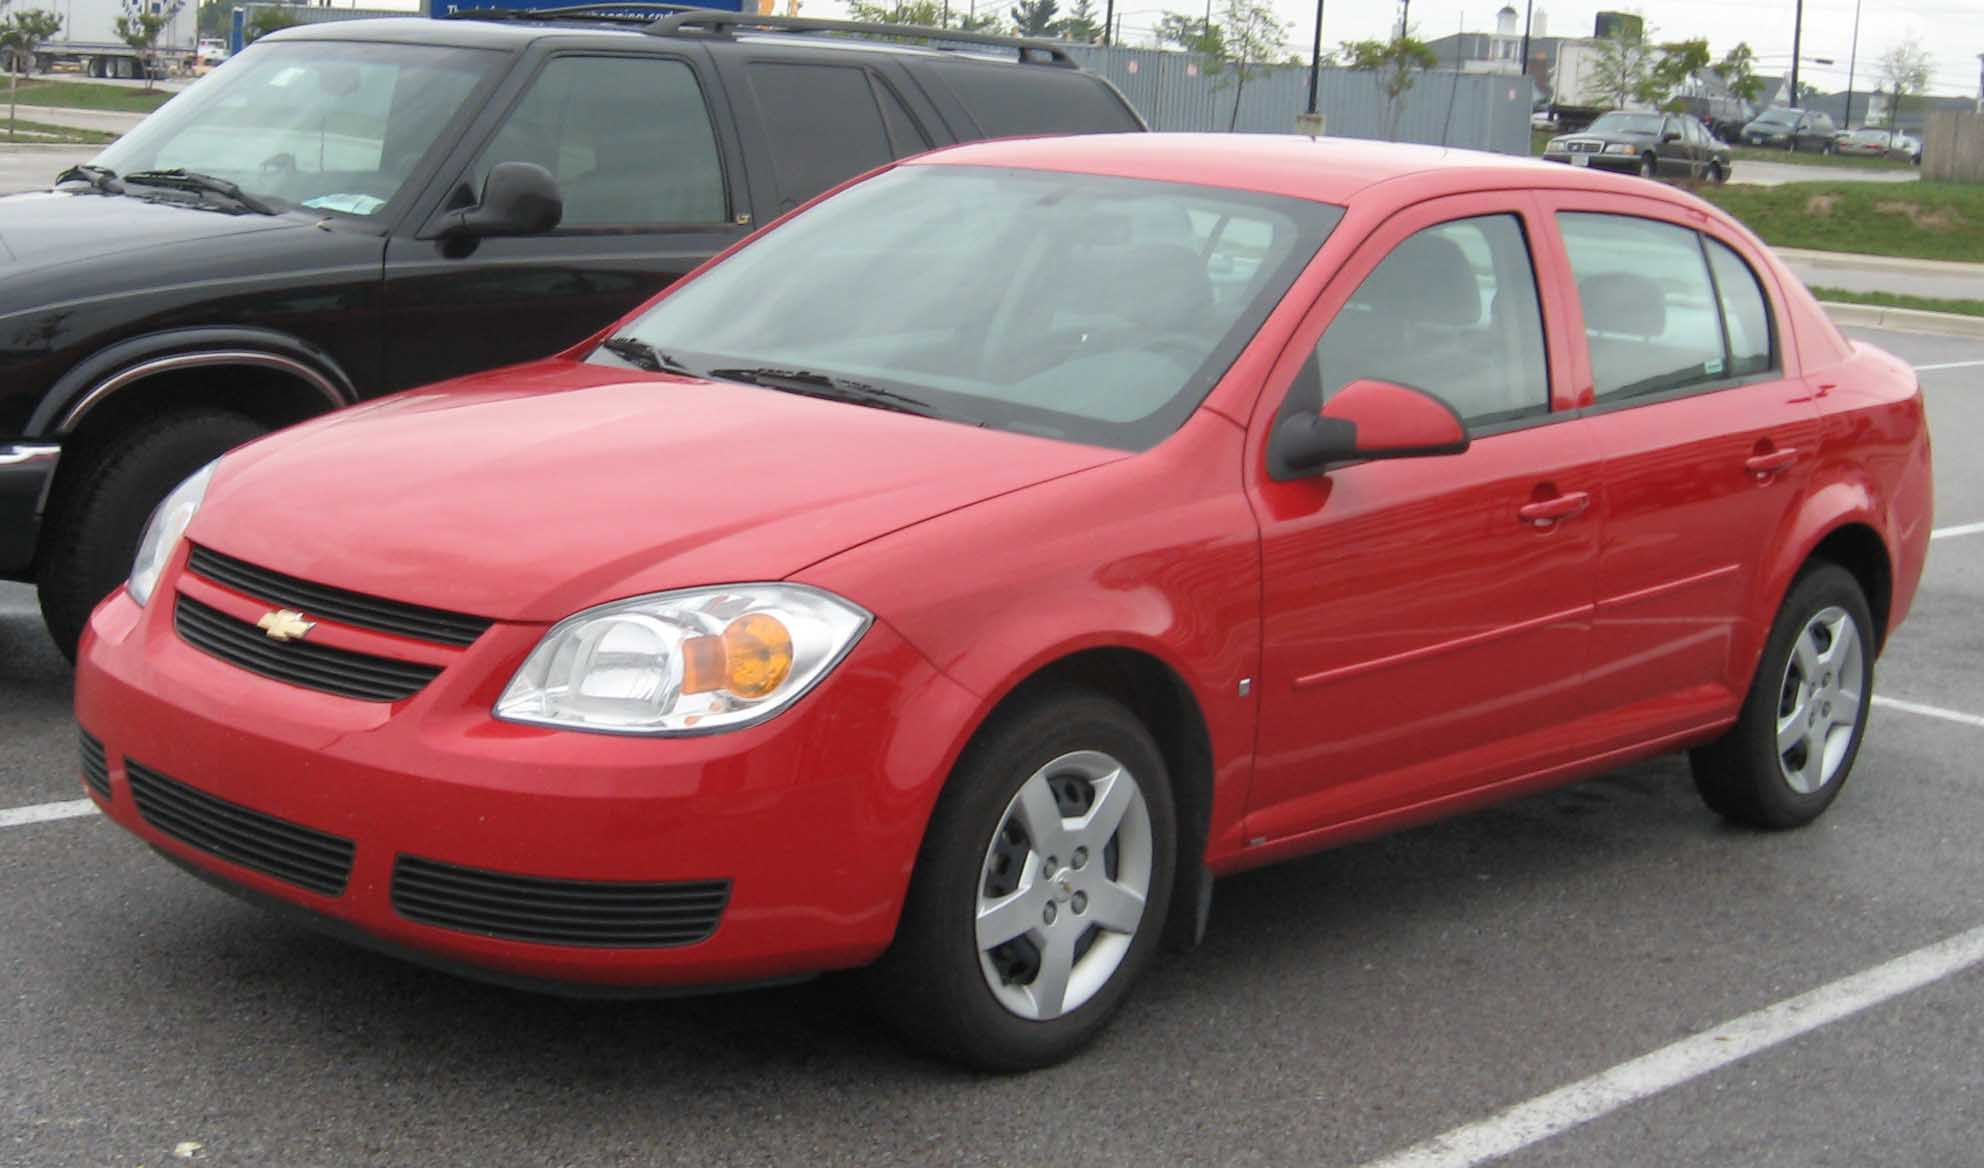 2007 chevrolet cobalt photos, informations, articles bestcarmag com 2007 Chevy Cobalt Blue at 2007 Chevy Cobalt Models